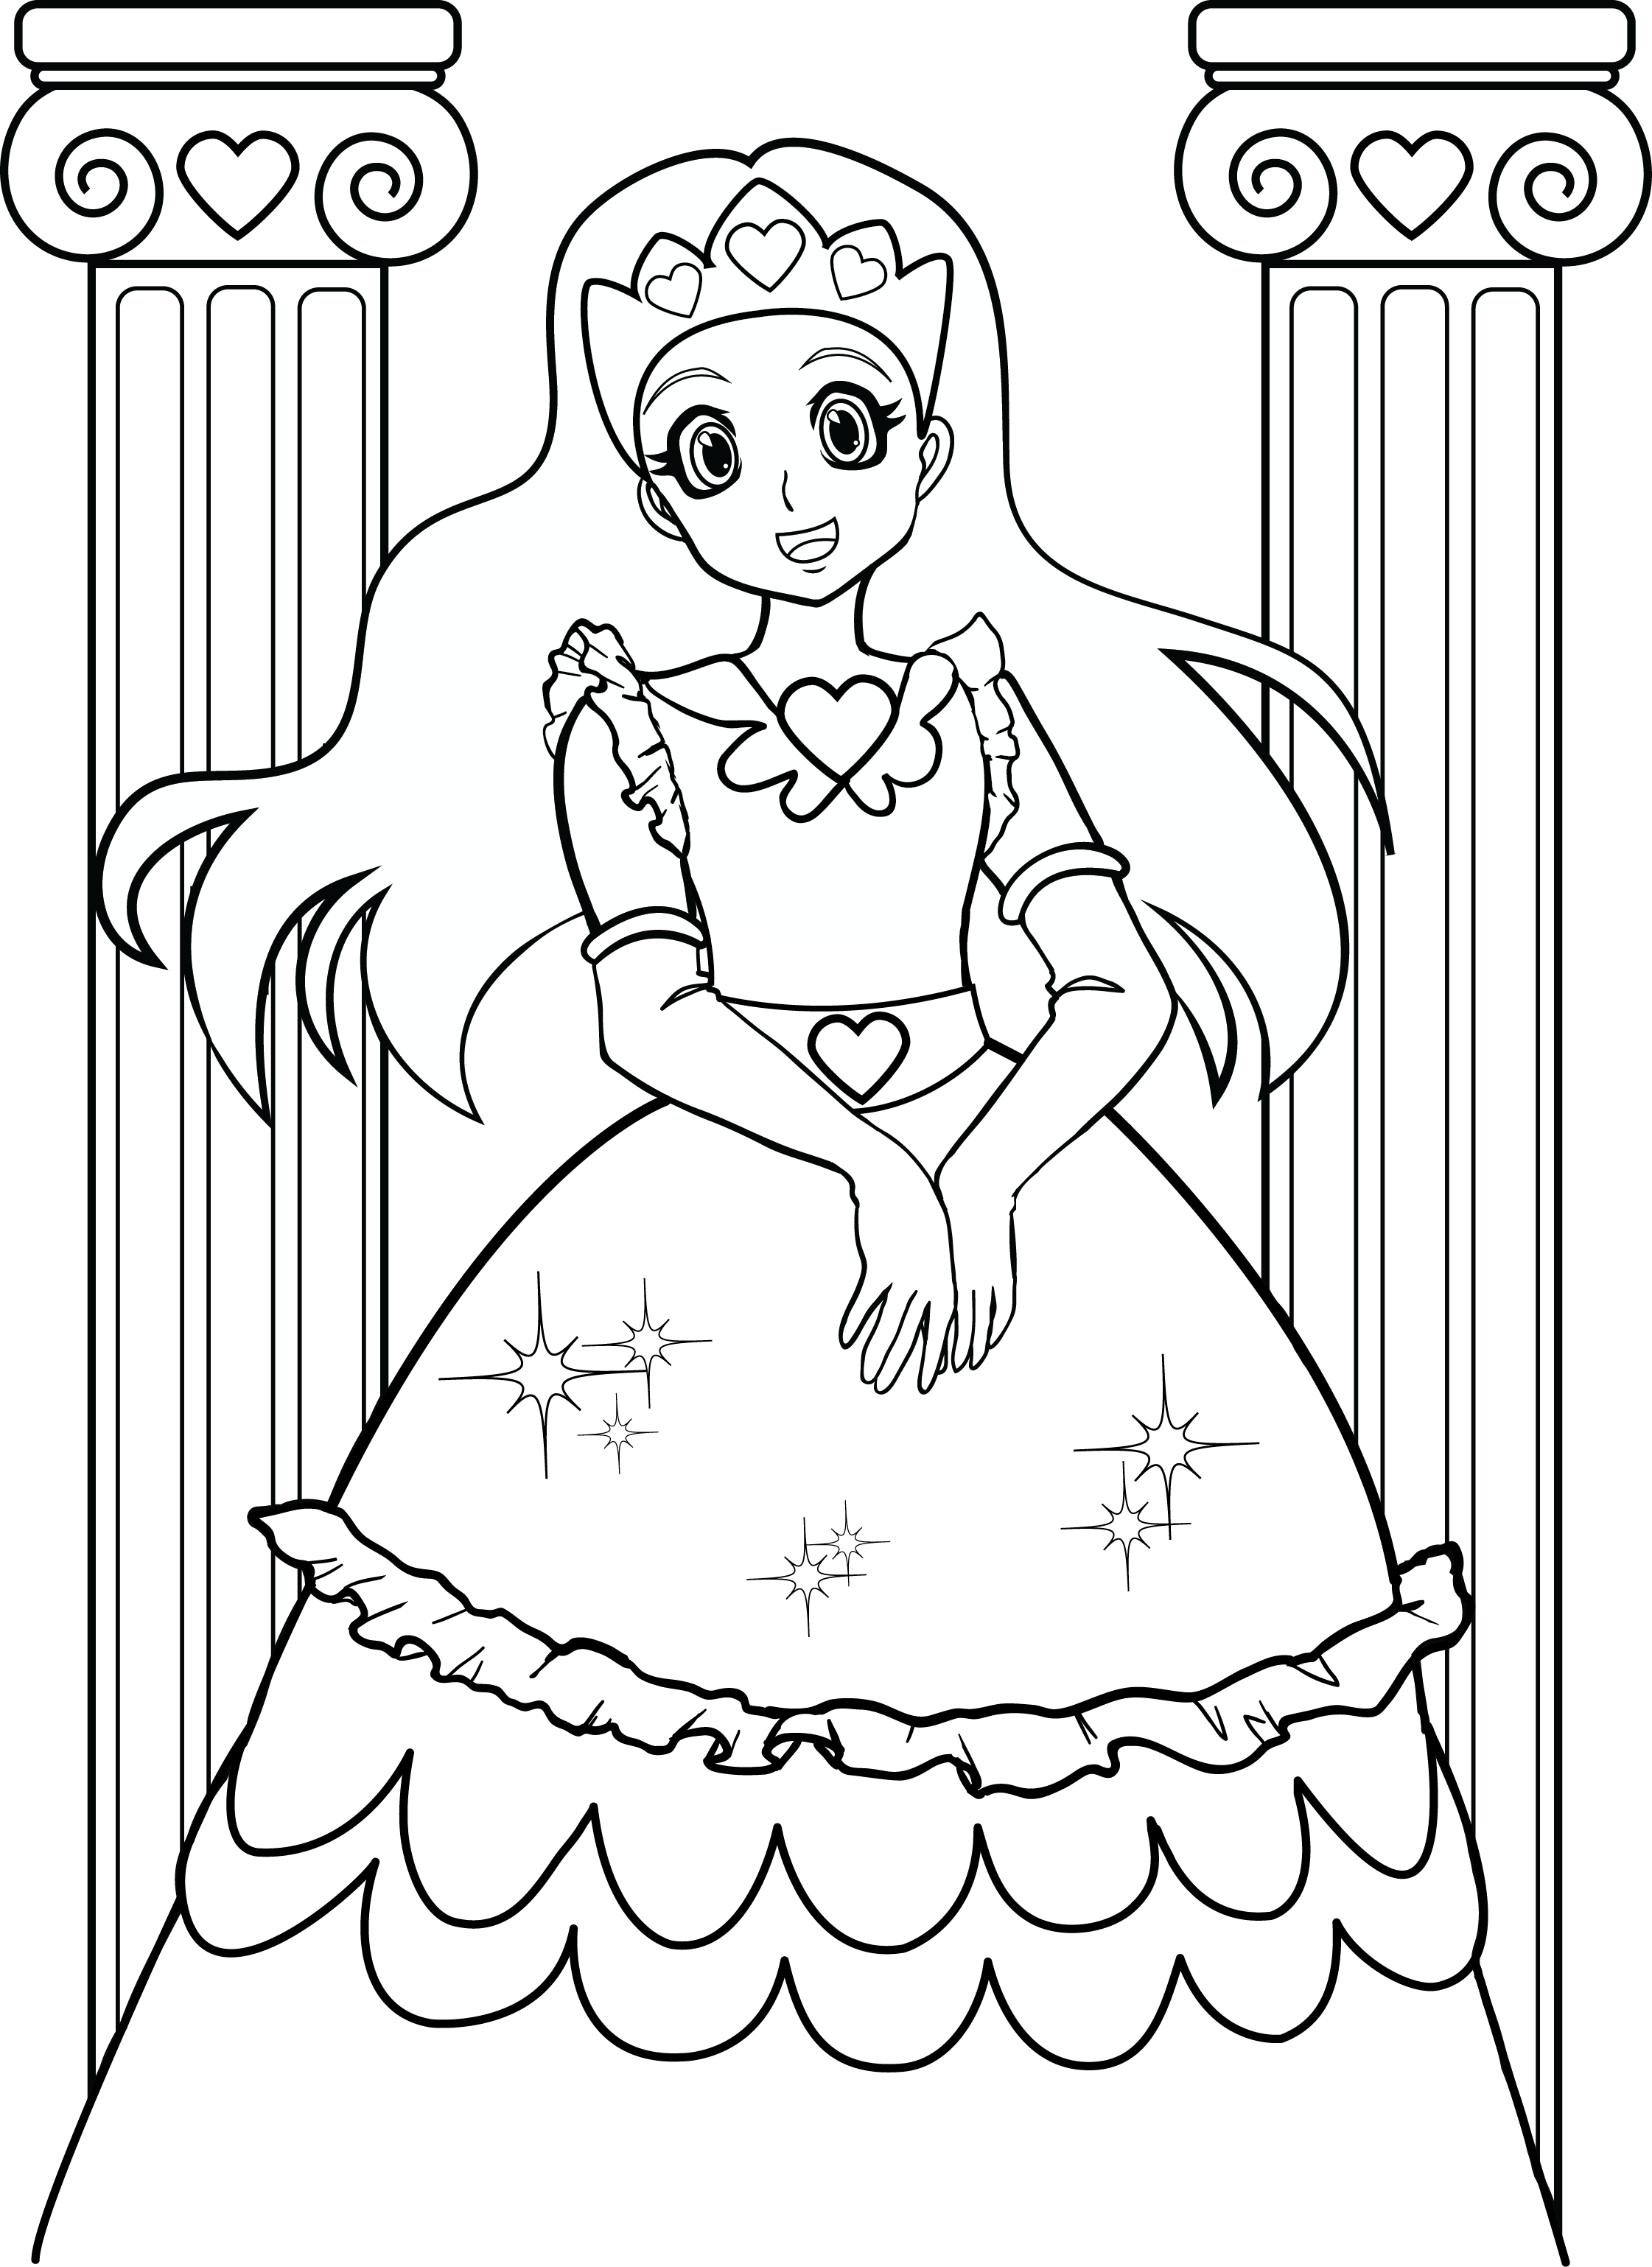 Coloring pages for girls 7 coloring kids for Free printable coloring pages for girls